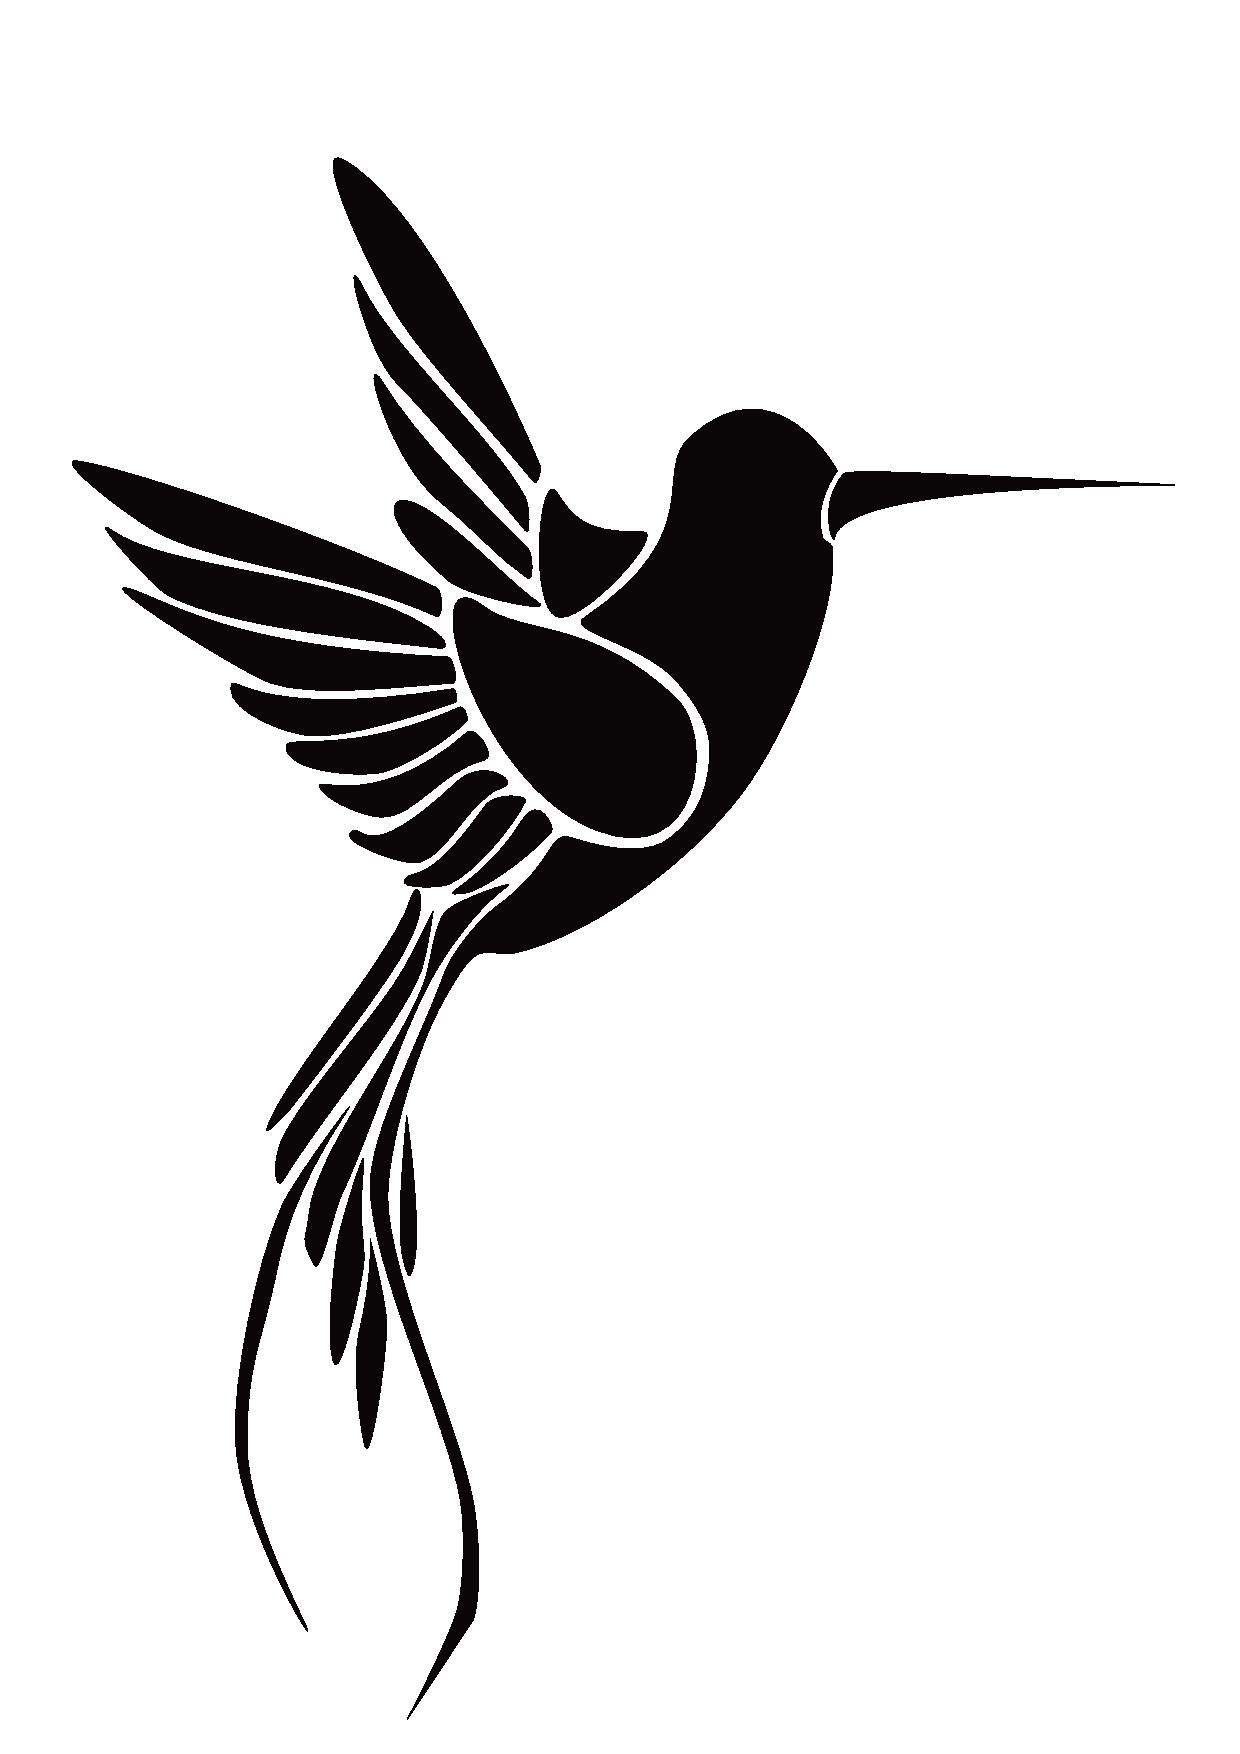 hummingbird stencil Google Search Animal stencil